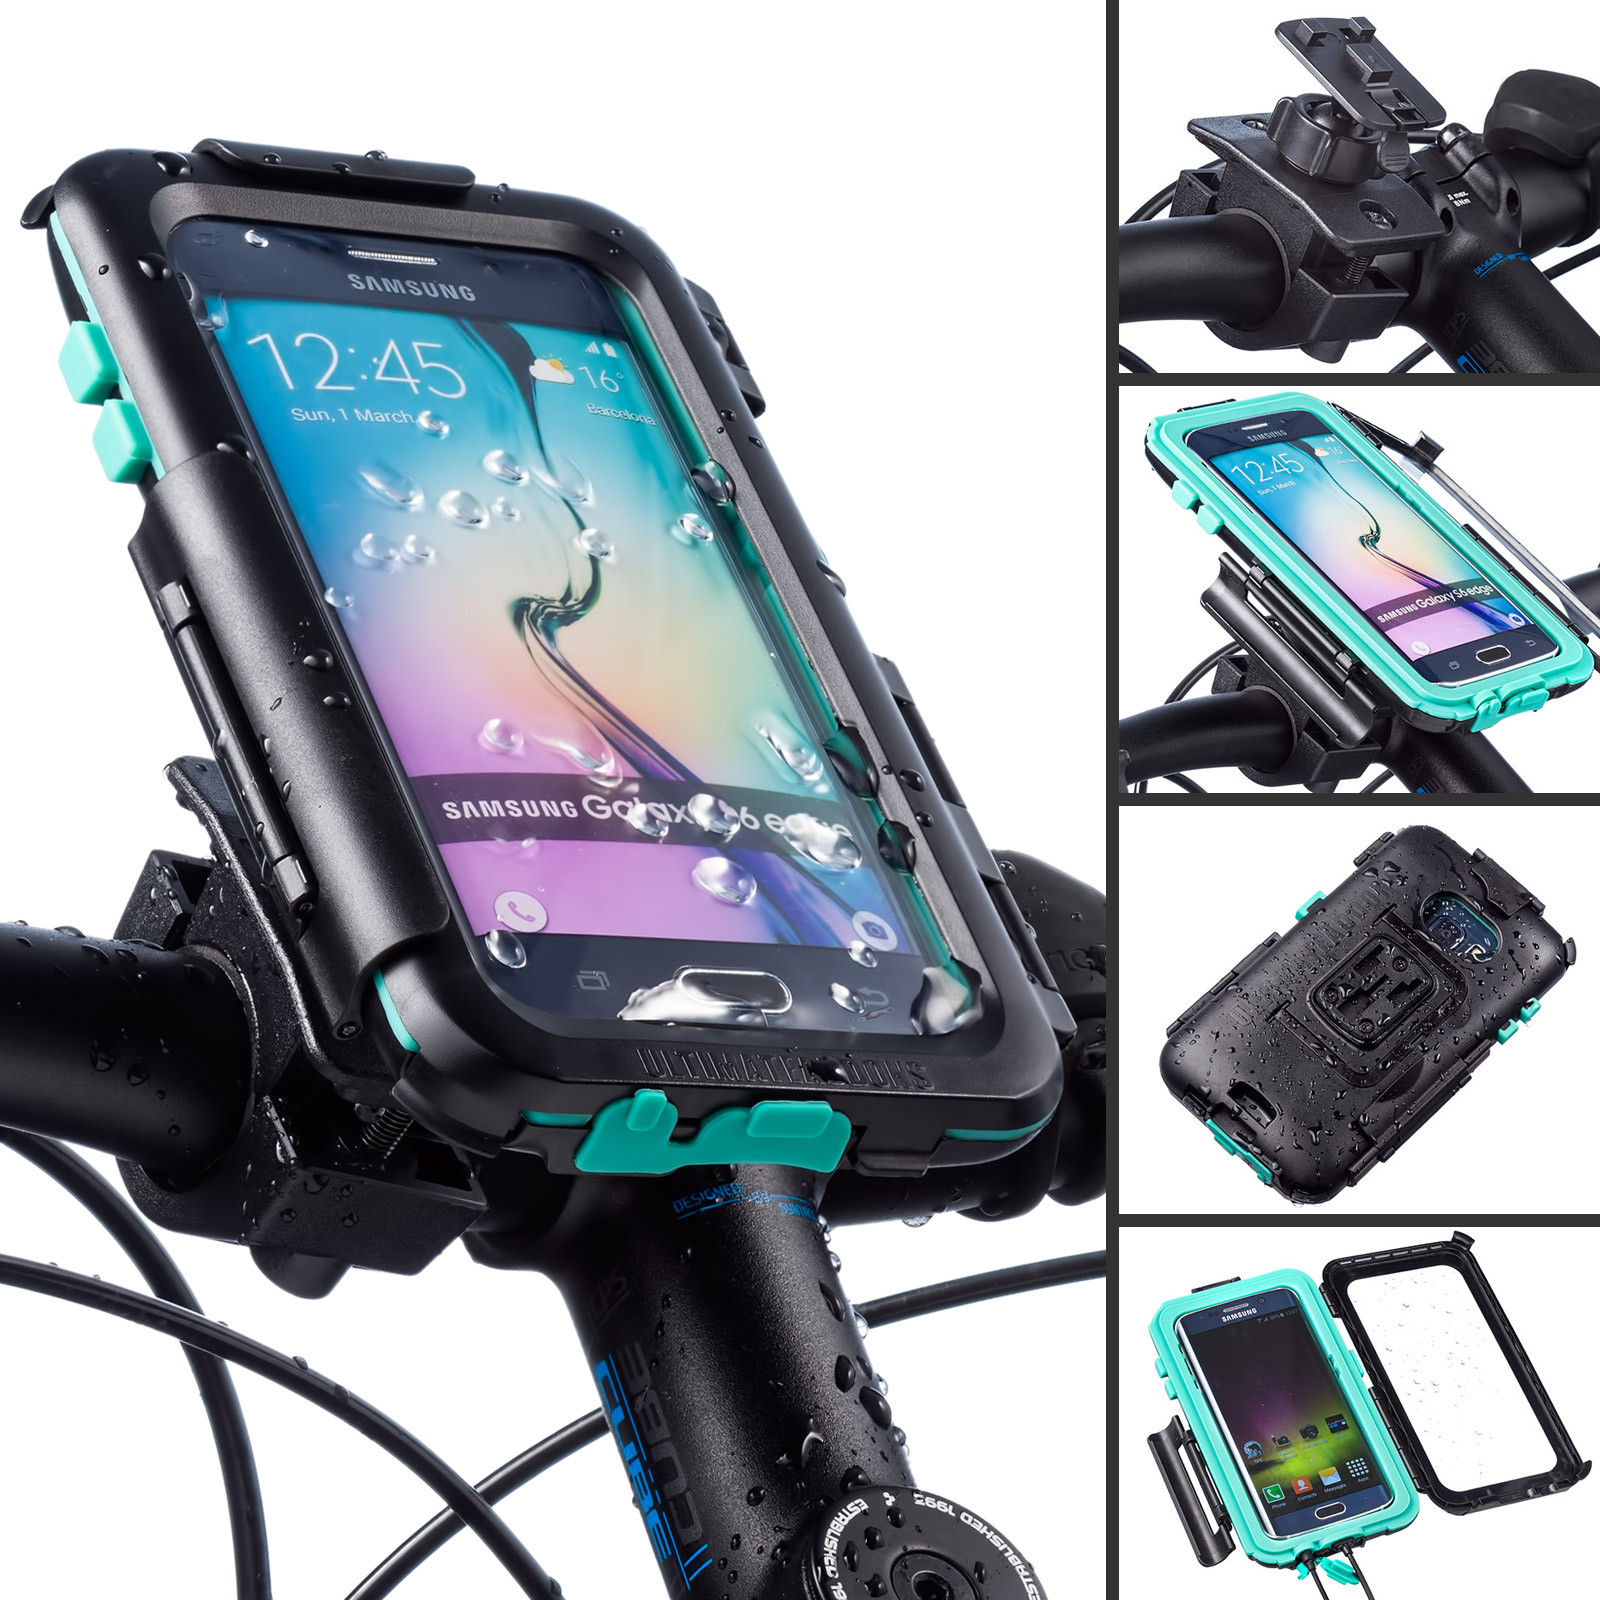 first rate ec649 7b01f Details about Ultimateaddons Bicycle Bike Mount and Tough Waterproof Case  for Galaxy S6 Edge